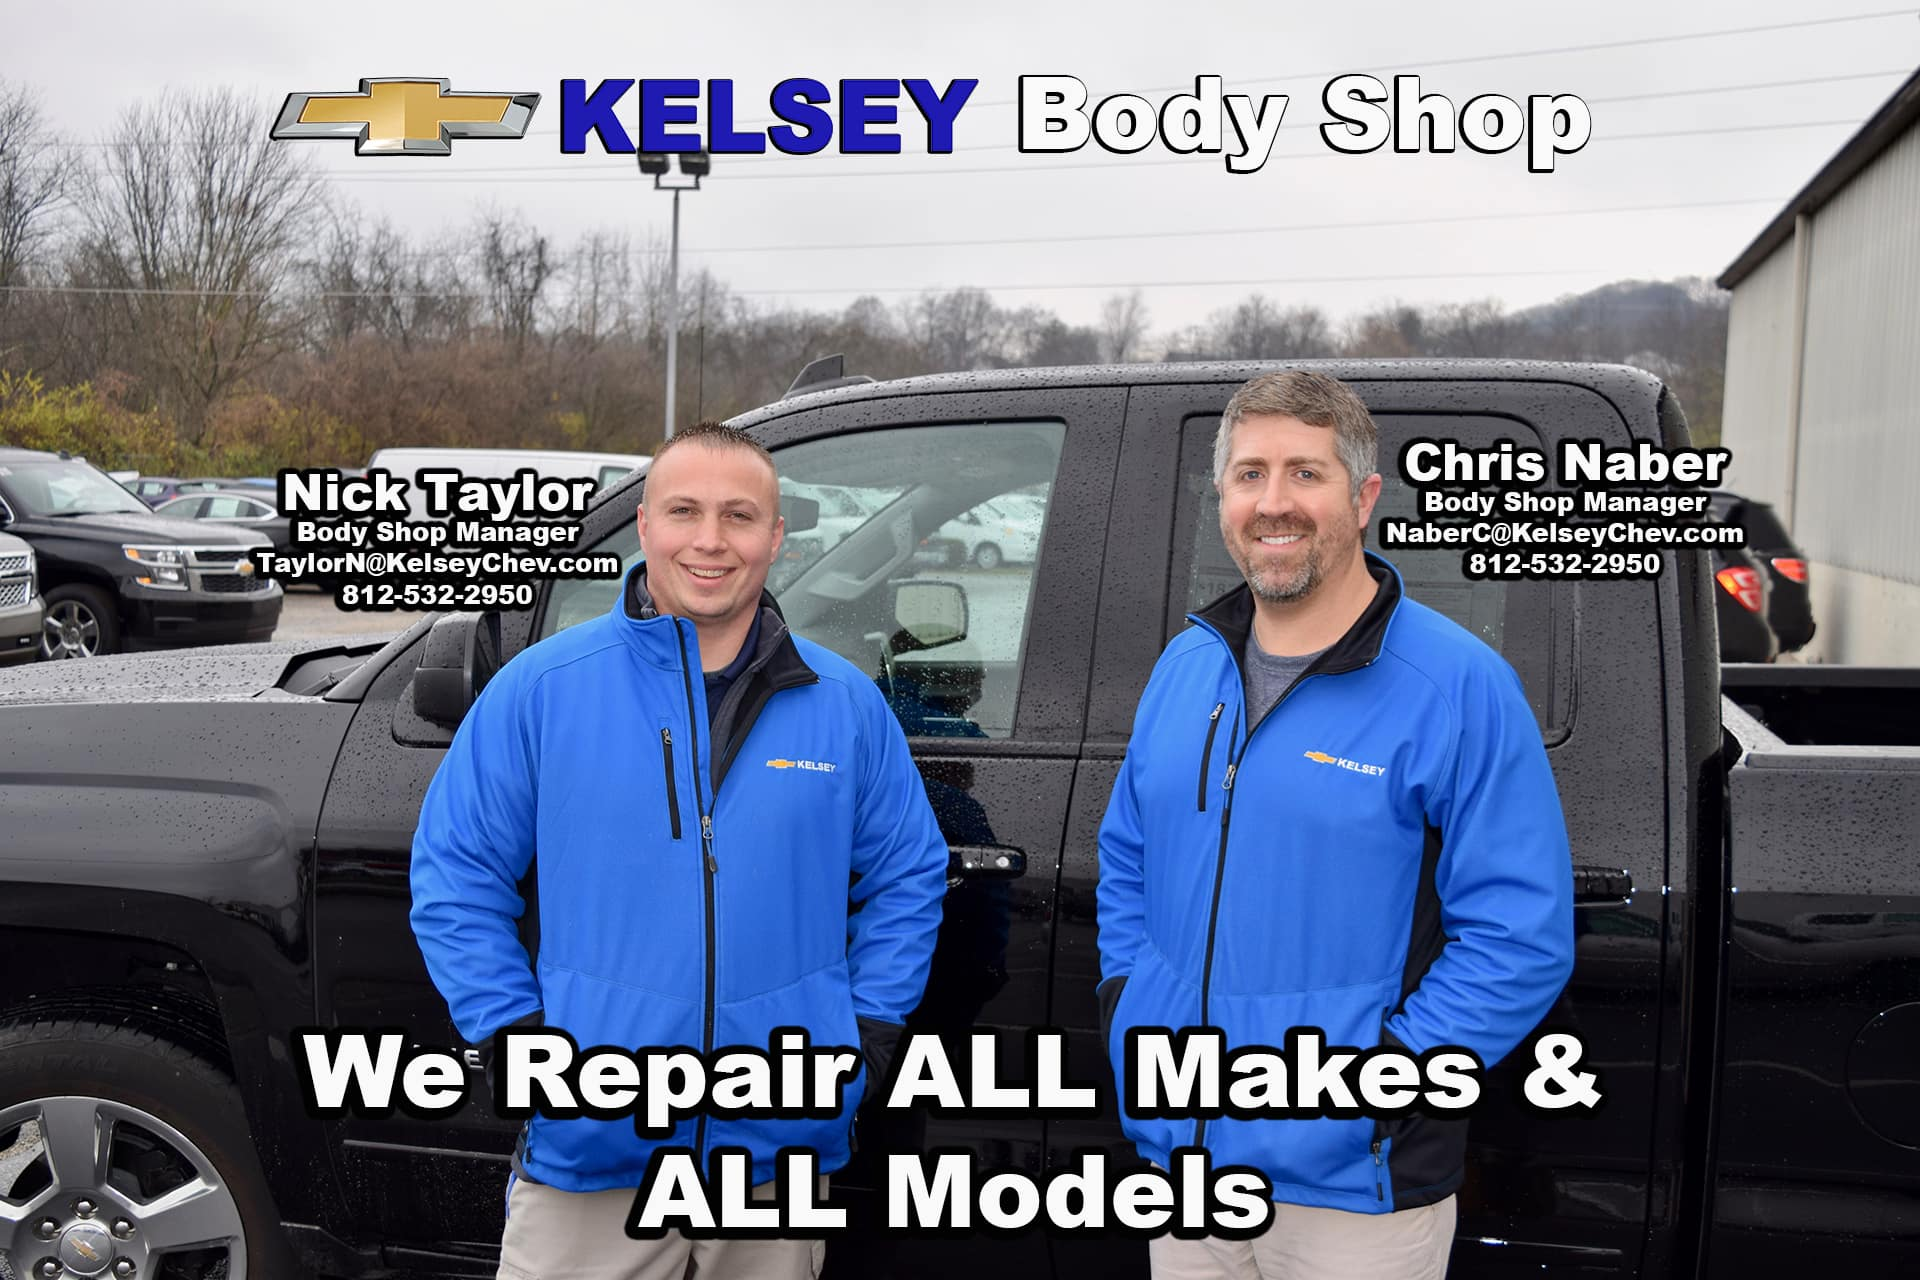 Kelsey Body Shop in Greendale, Indiana